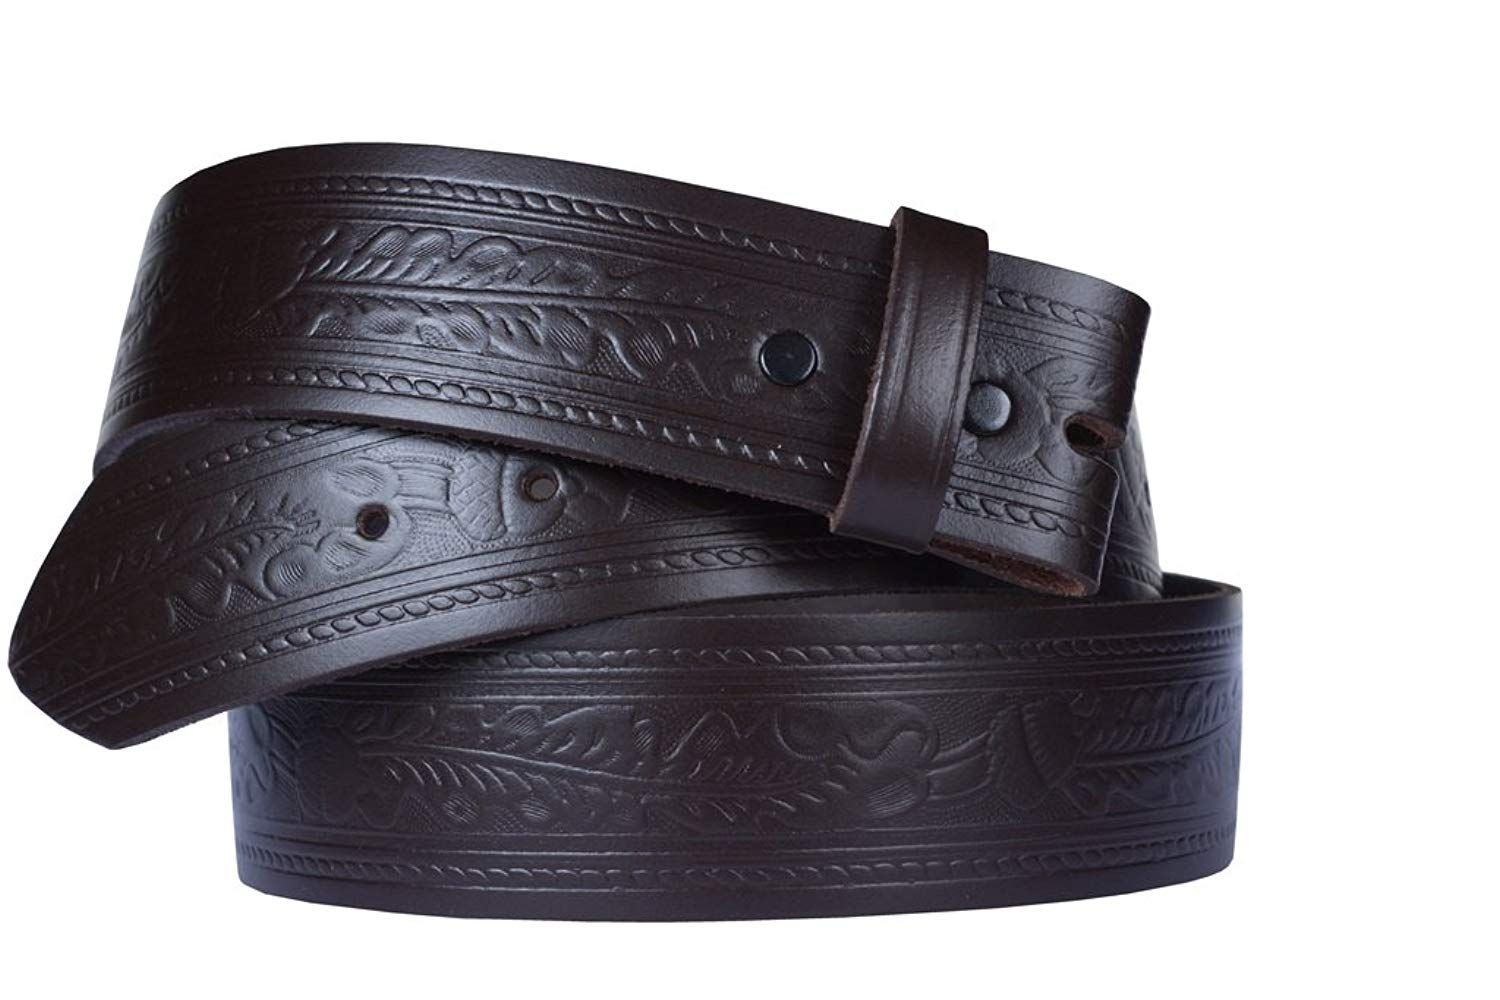 """Belt for Buckles 100% Top Grain One Piece Leather, 1.75"""" wide, Made in USA"""